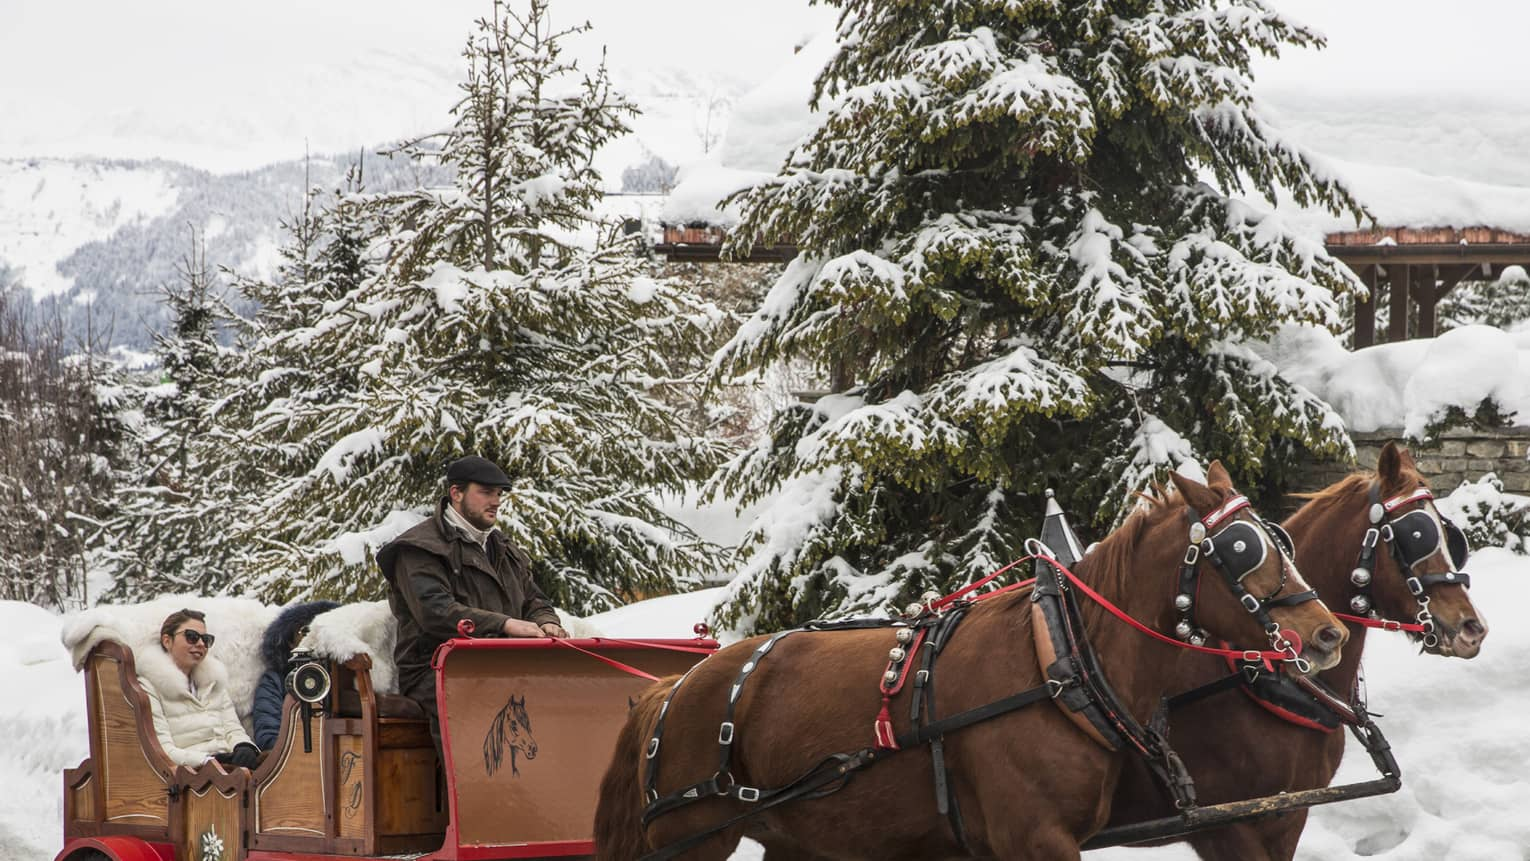 Guests explore a snow covered Megeve in a horse drawn carriage